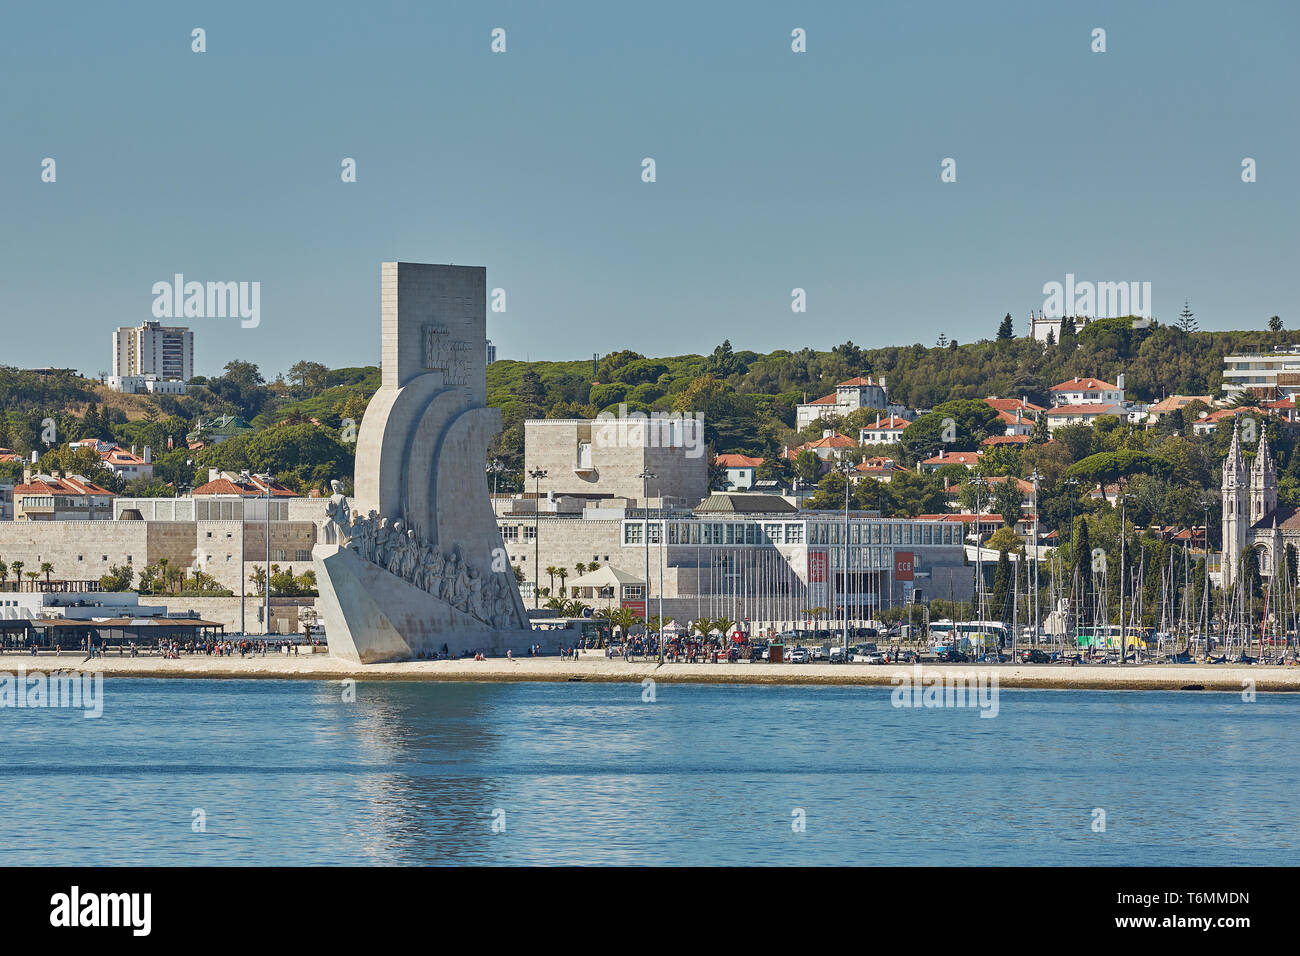 LISBON / PORTUGAL - OCTOBER 02, 2017: Padrao dos Descobrimentos (Discovery Monument) is an imposing architectural achievement in Belem district of Lis - Stock Image